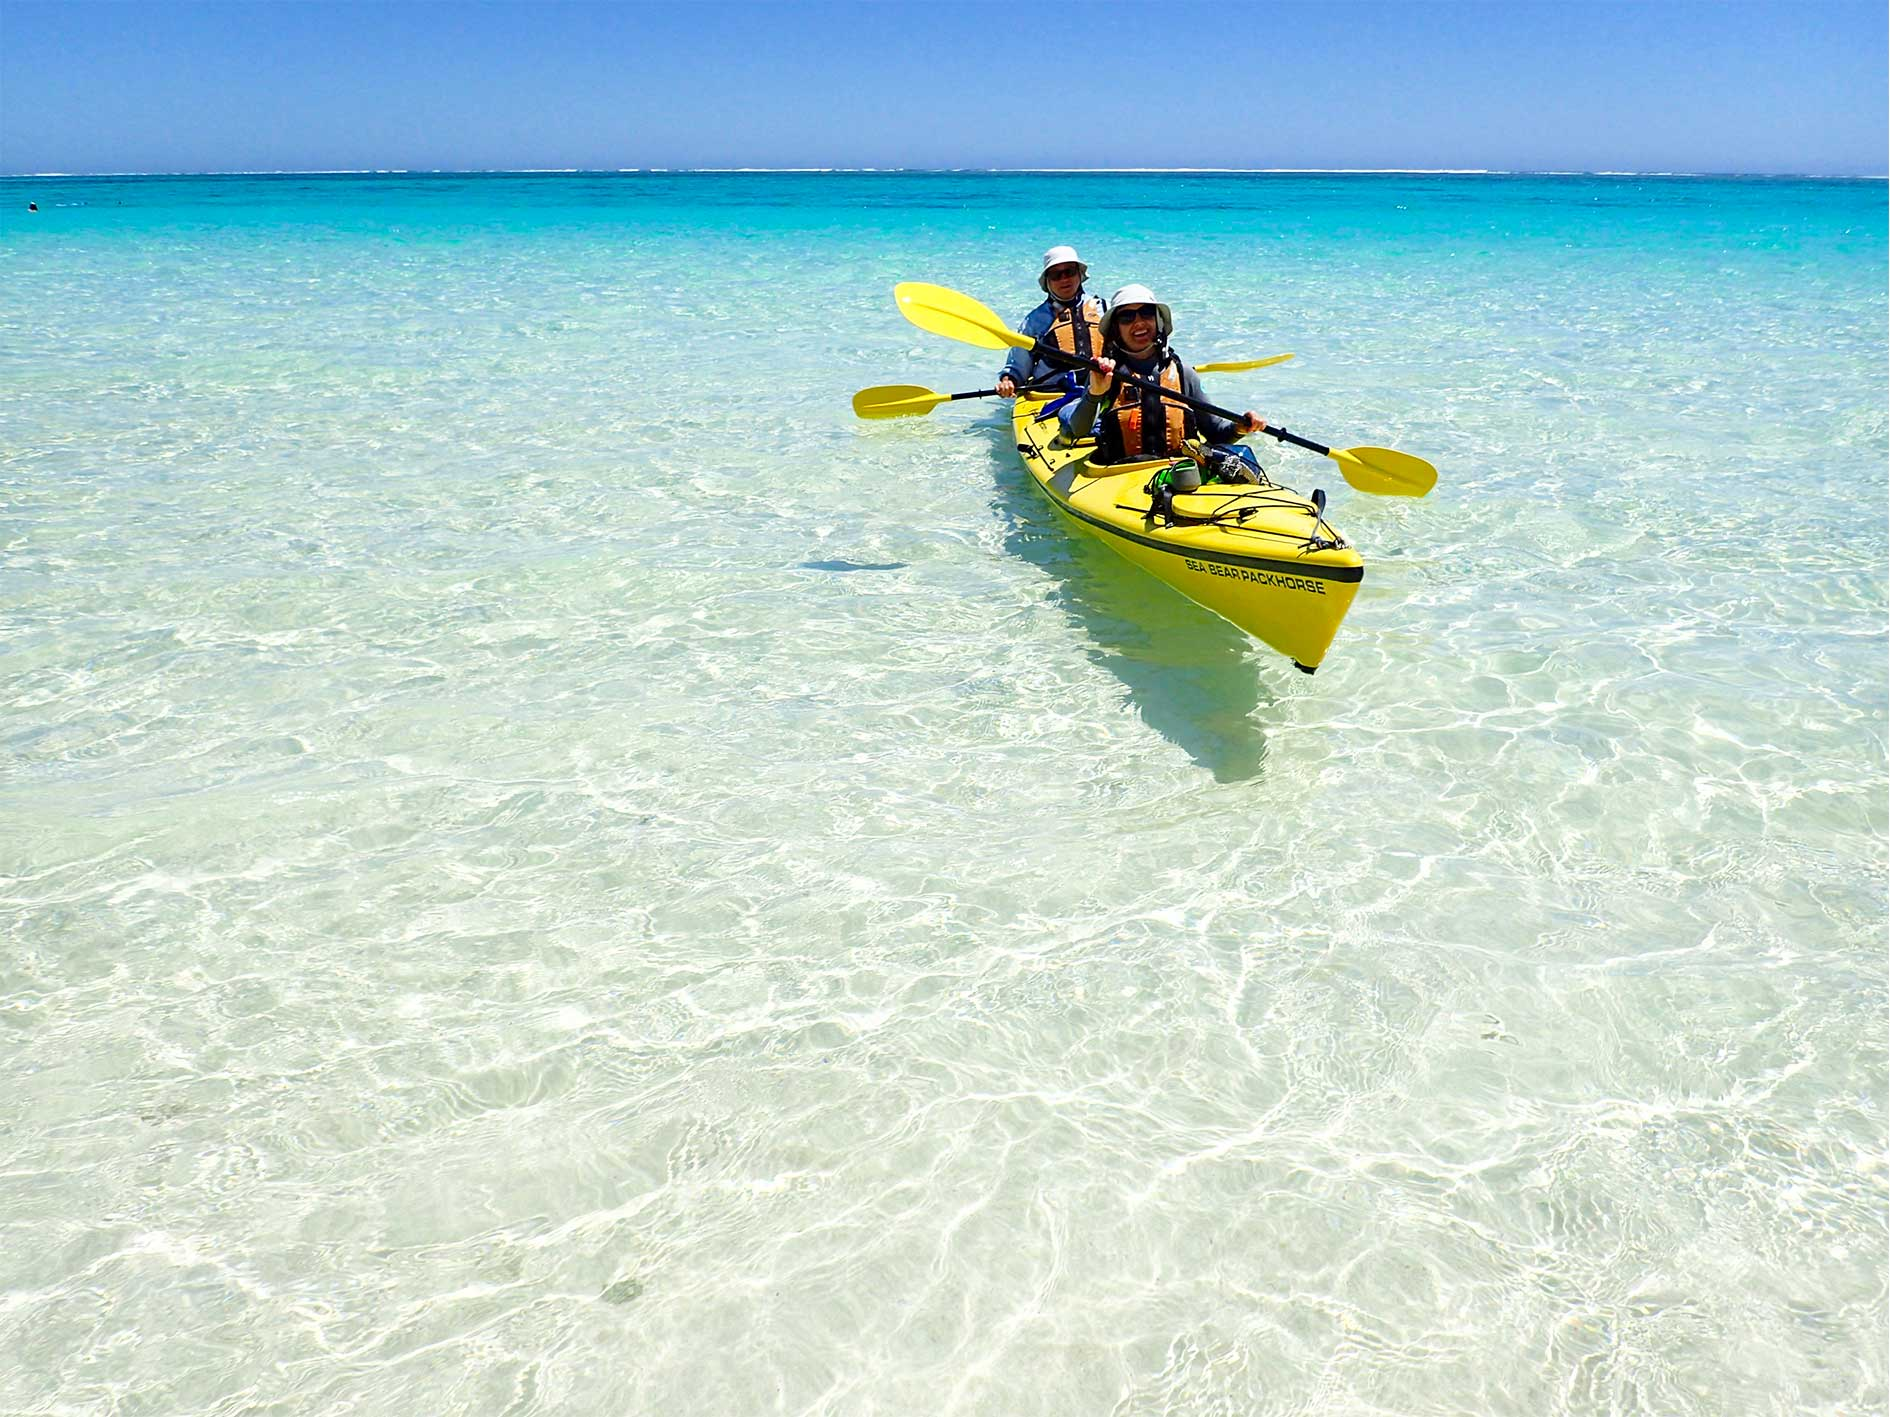 3 day Reef and Beach, 4 day Reef and Beach and Whale Shark Adventure Package, camp, kayak, snorkel, eco tour, Ningaloo Reef, Cape Range National Park, Exmouth Adventure Co, Western Australia